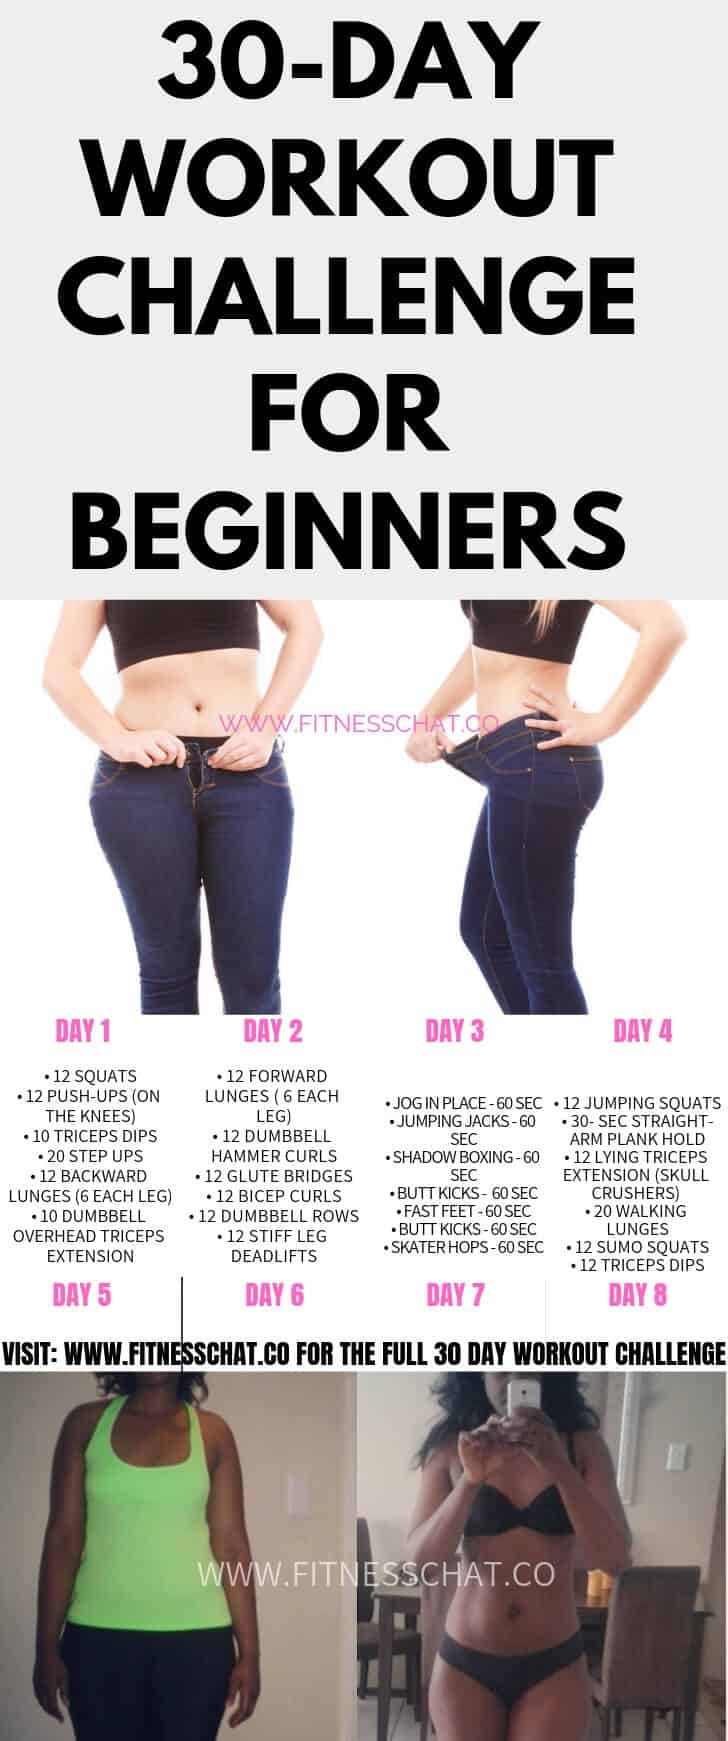 Beginner Fat Burning Workout  30 Day Fat Burning Workout Routines for Beginners